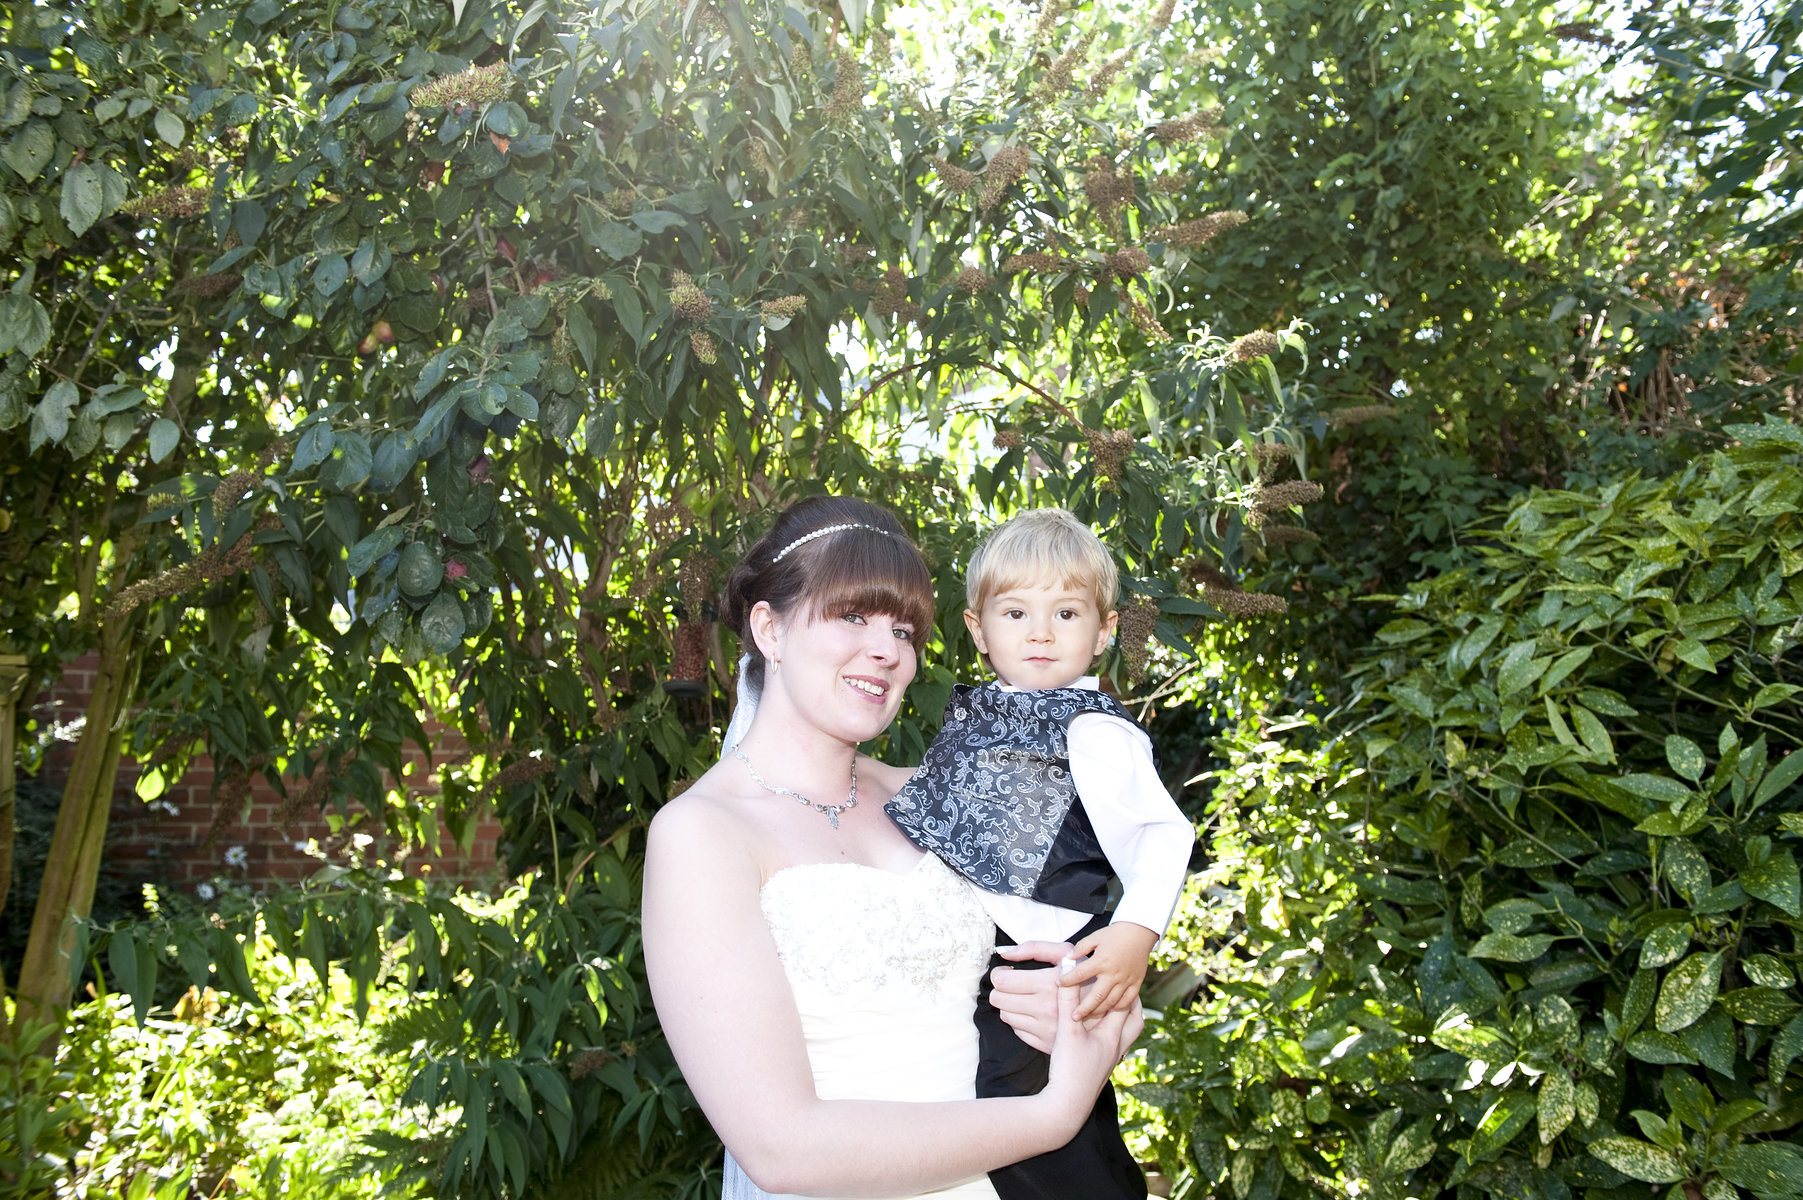 Antony & Sarah // Wedding 2012